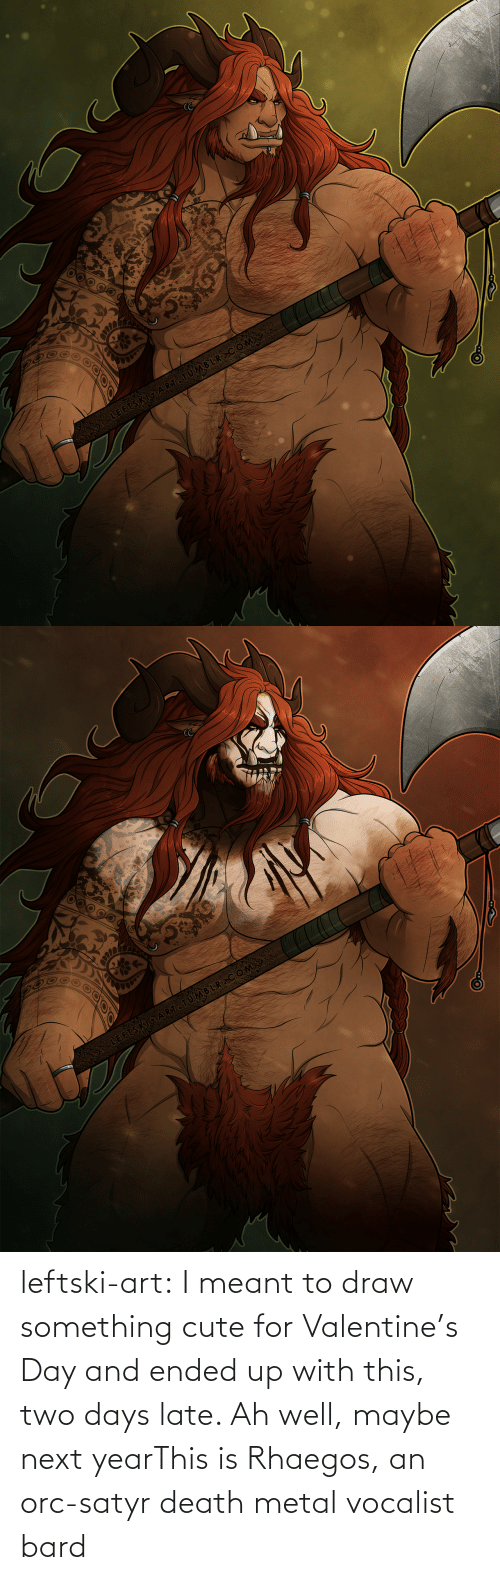 Next Year: leftski-art:  I meant to draw something cute for Valentine's Day and ended up with this, two days late. Ah well, maybe next yearThis is Rhaegos, an orc-satyr death metal vocalist bard